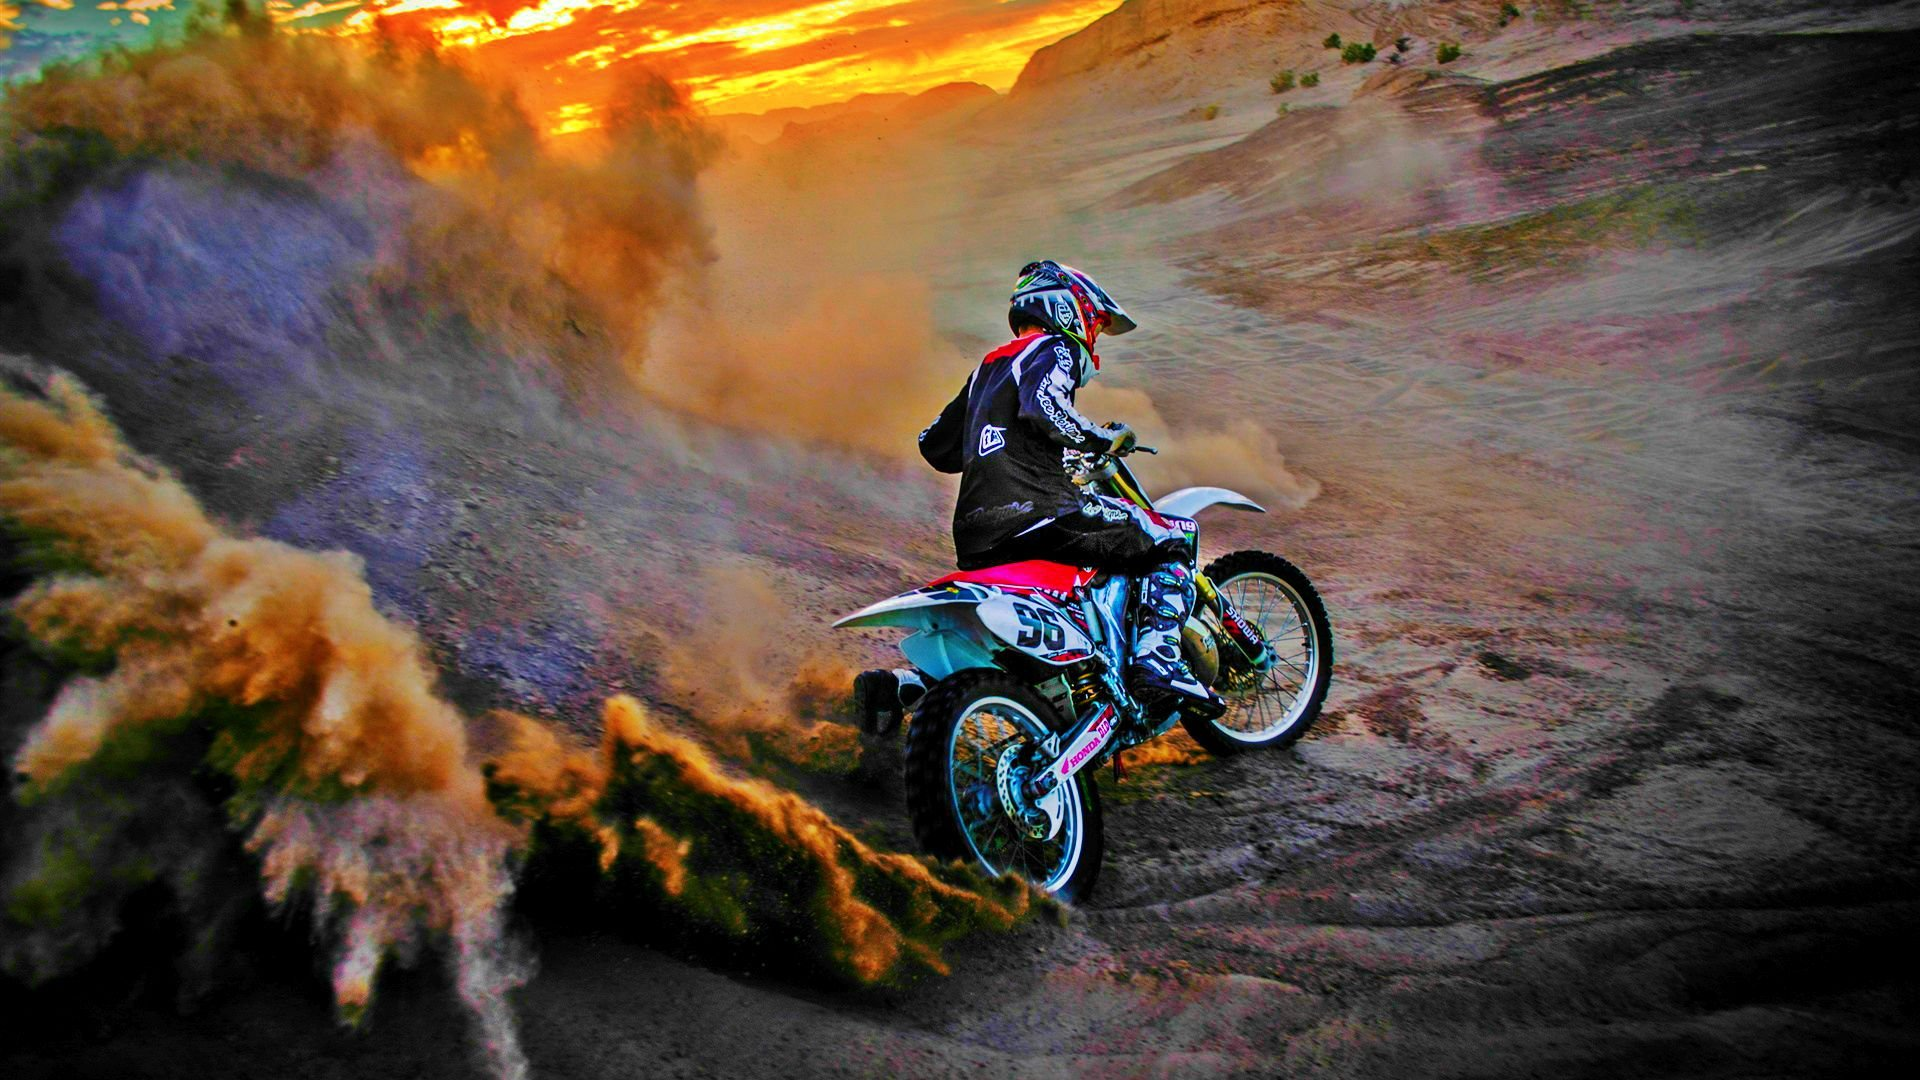 dirtbike motocross moto bike extreme motorbike dirt (16)